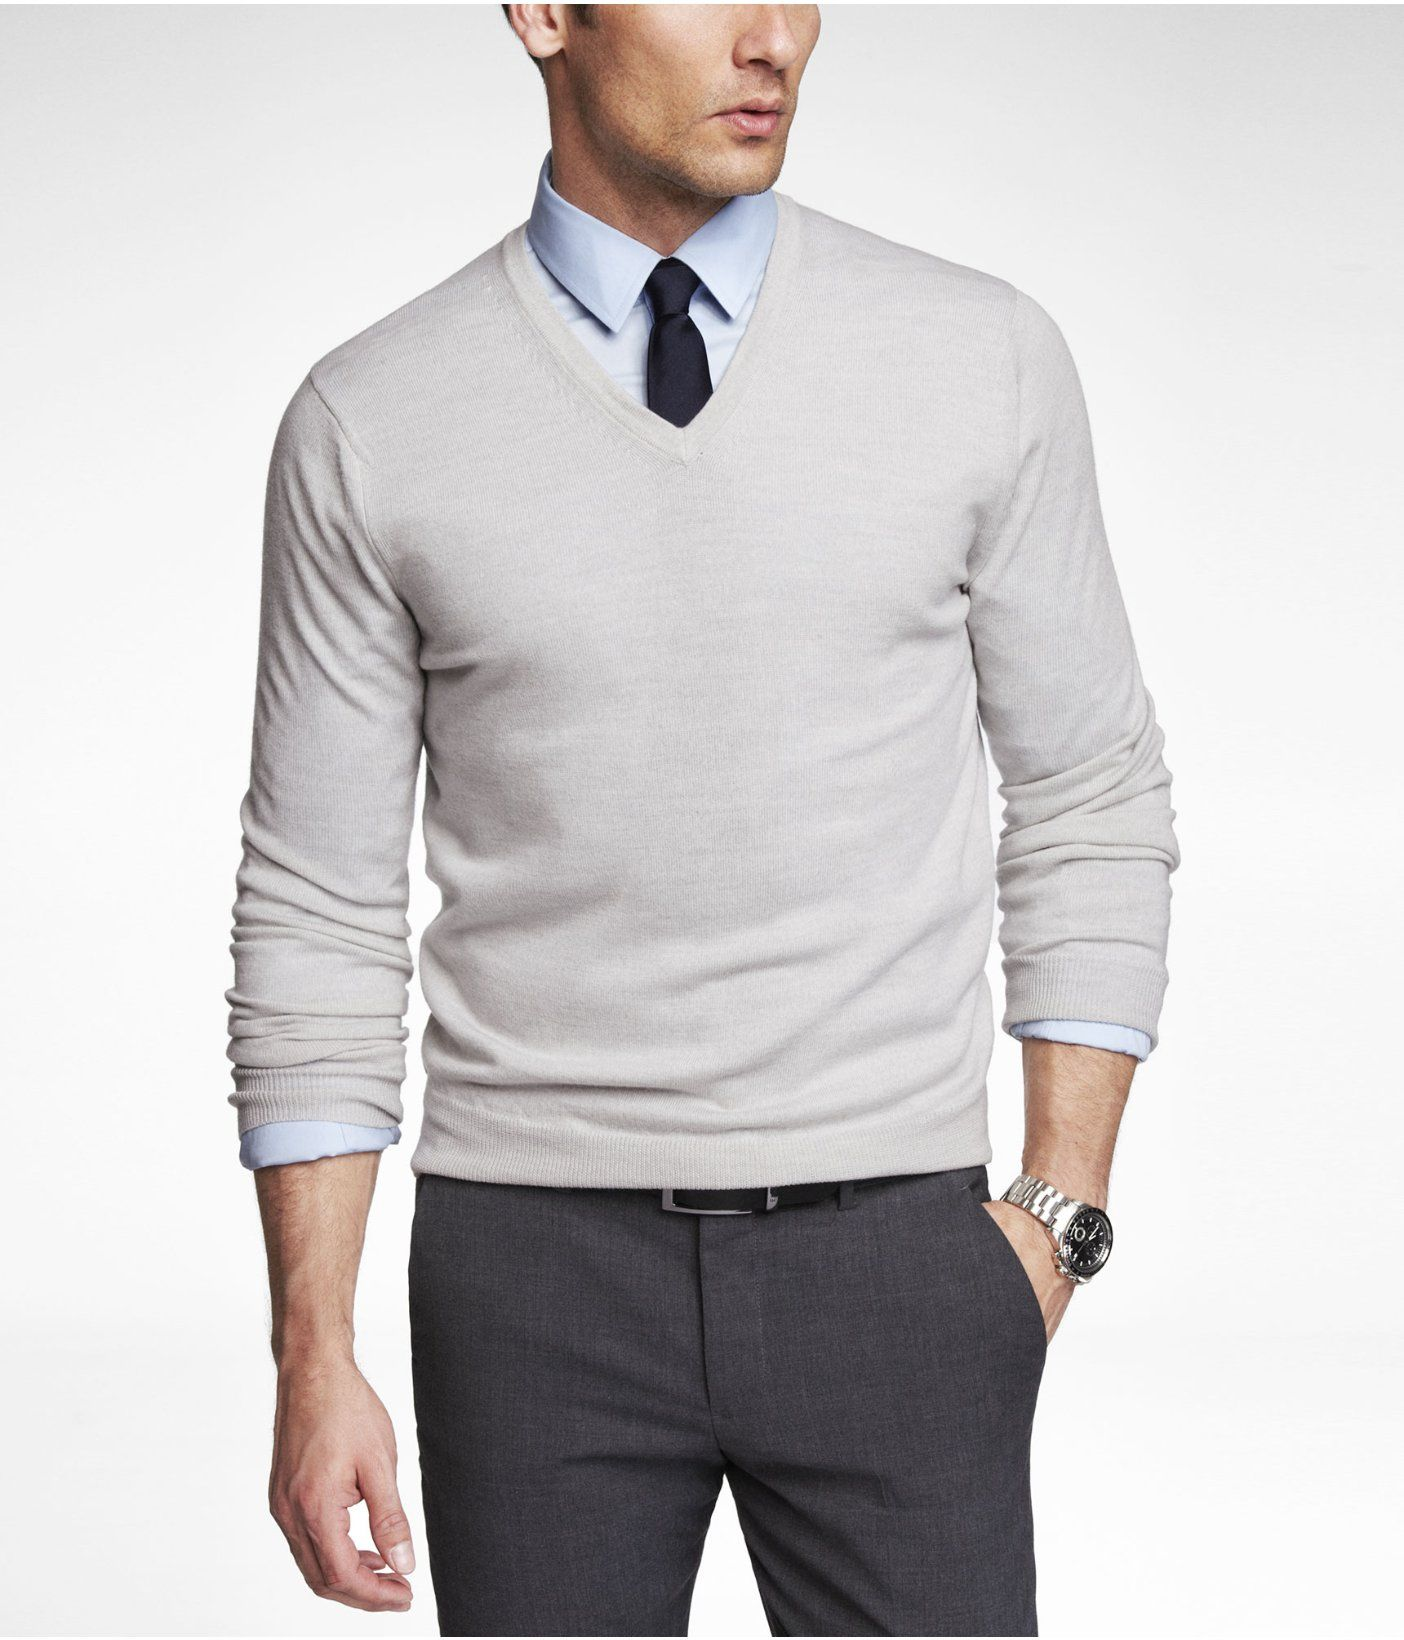 MERINO WOOL V-NECK SWEATER -- Silver Gray -- S or XS